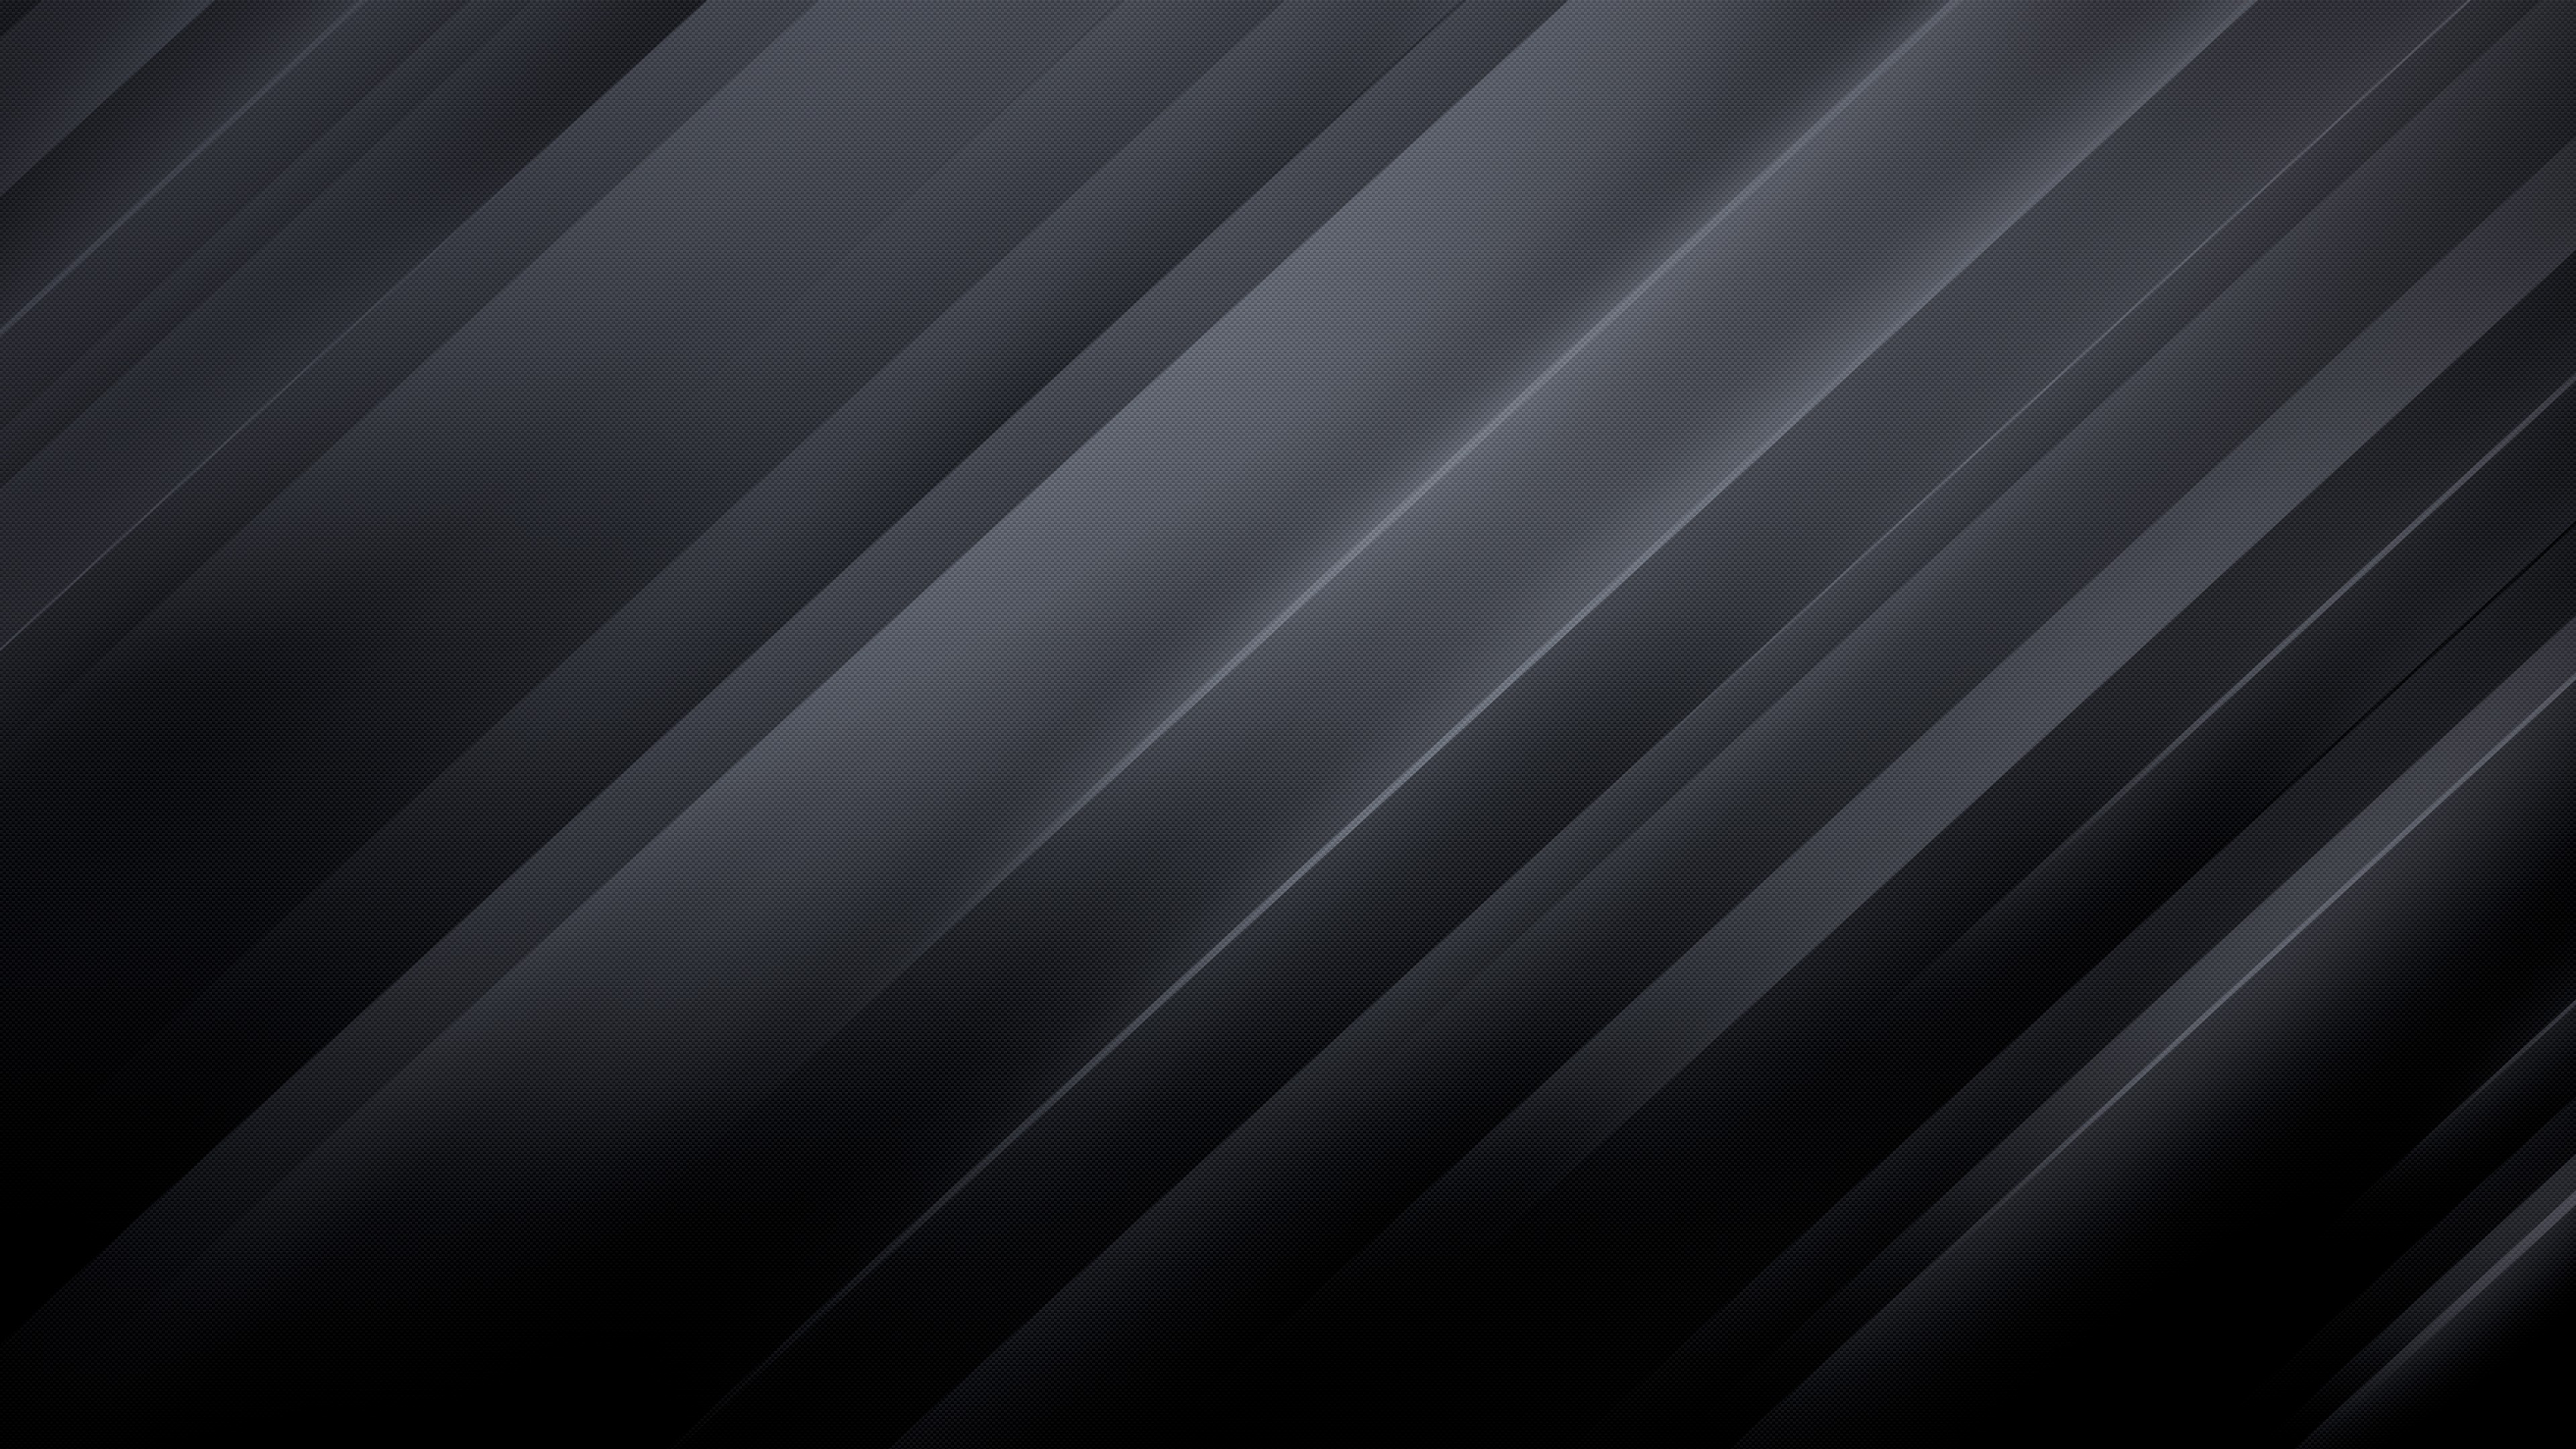 4k Black Abstract Wallpaper